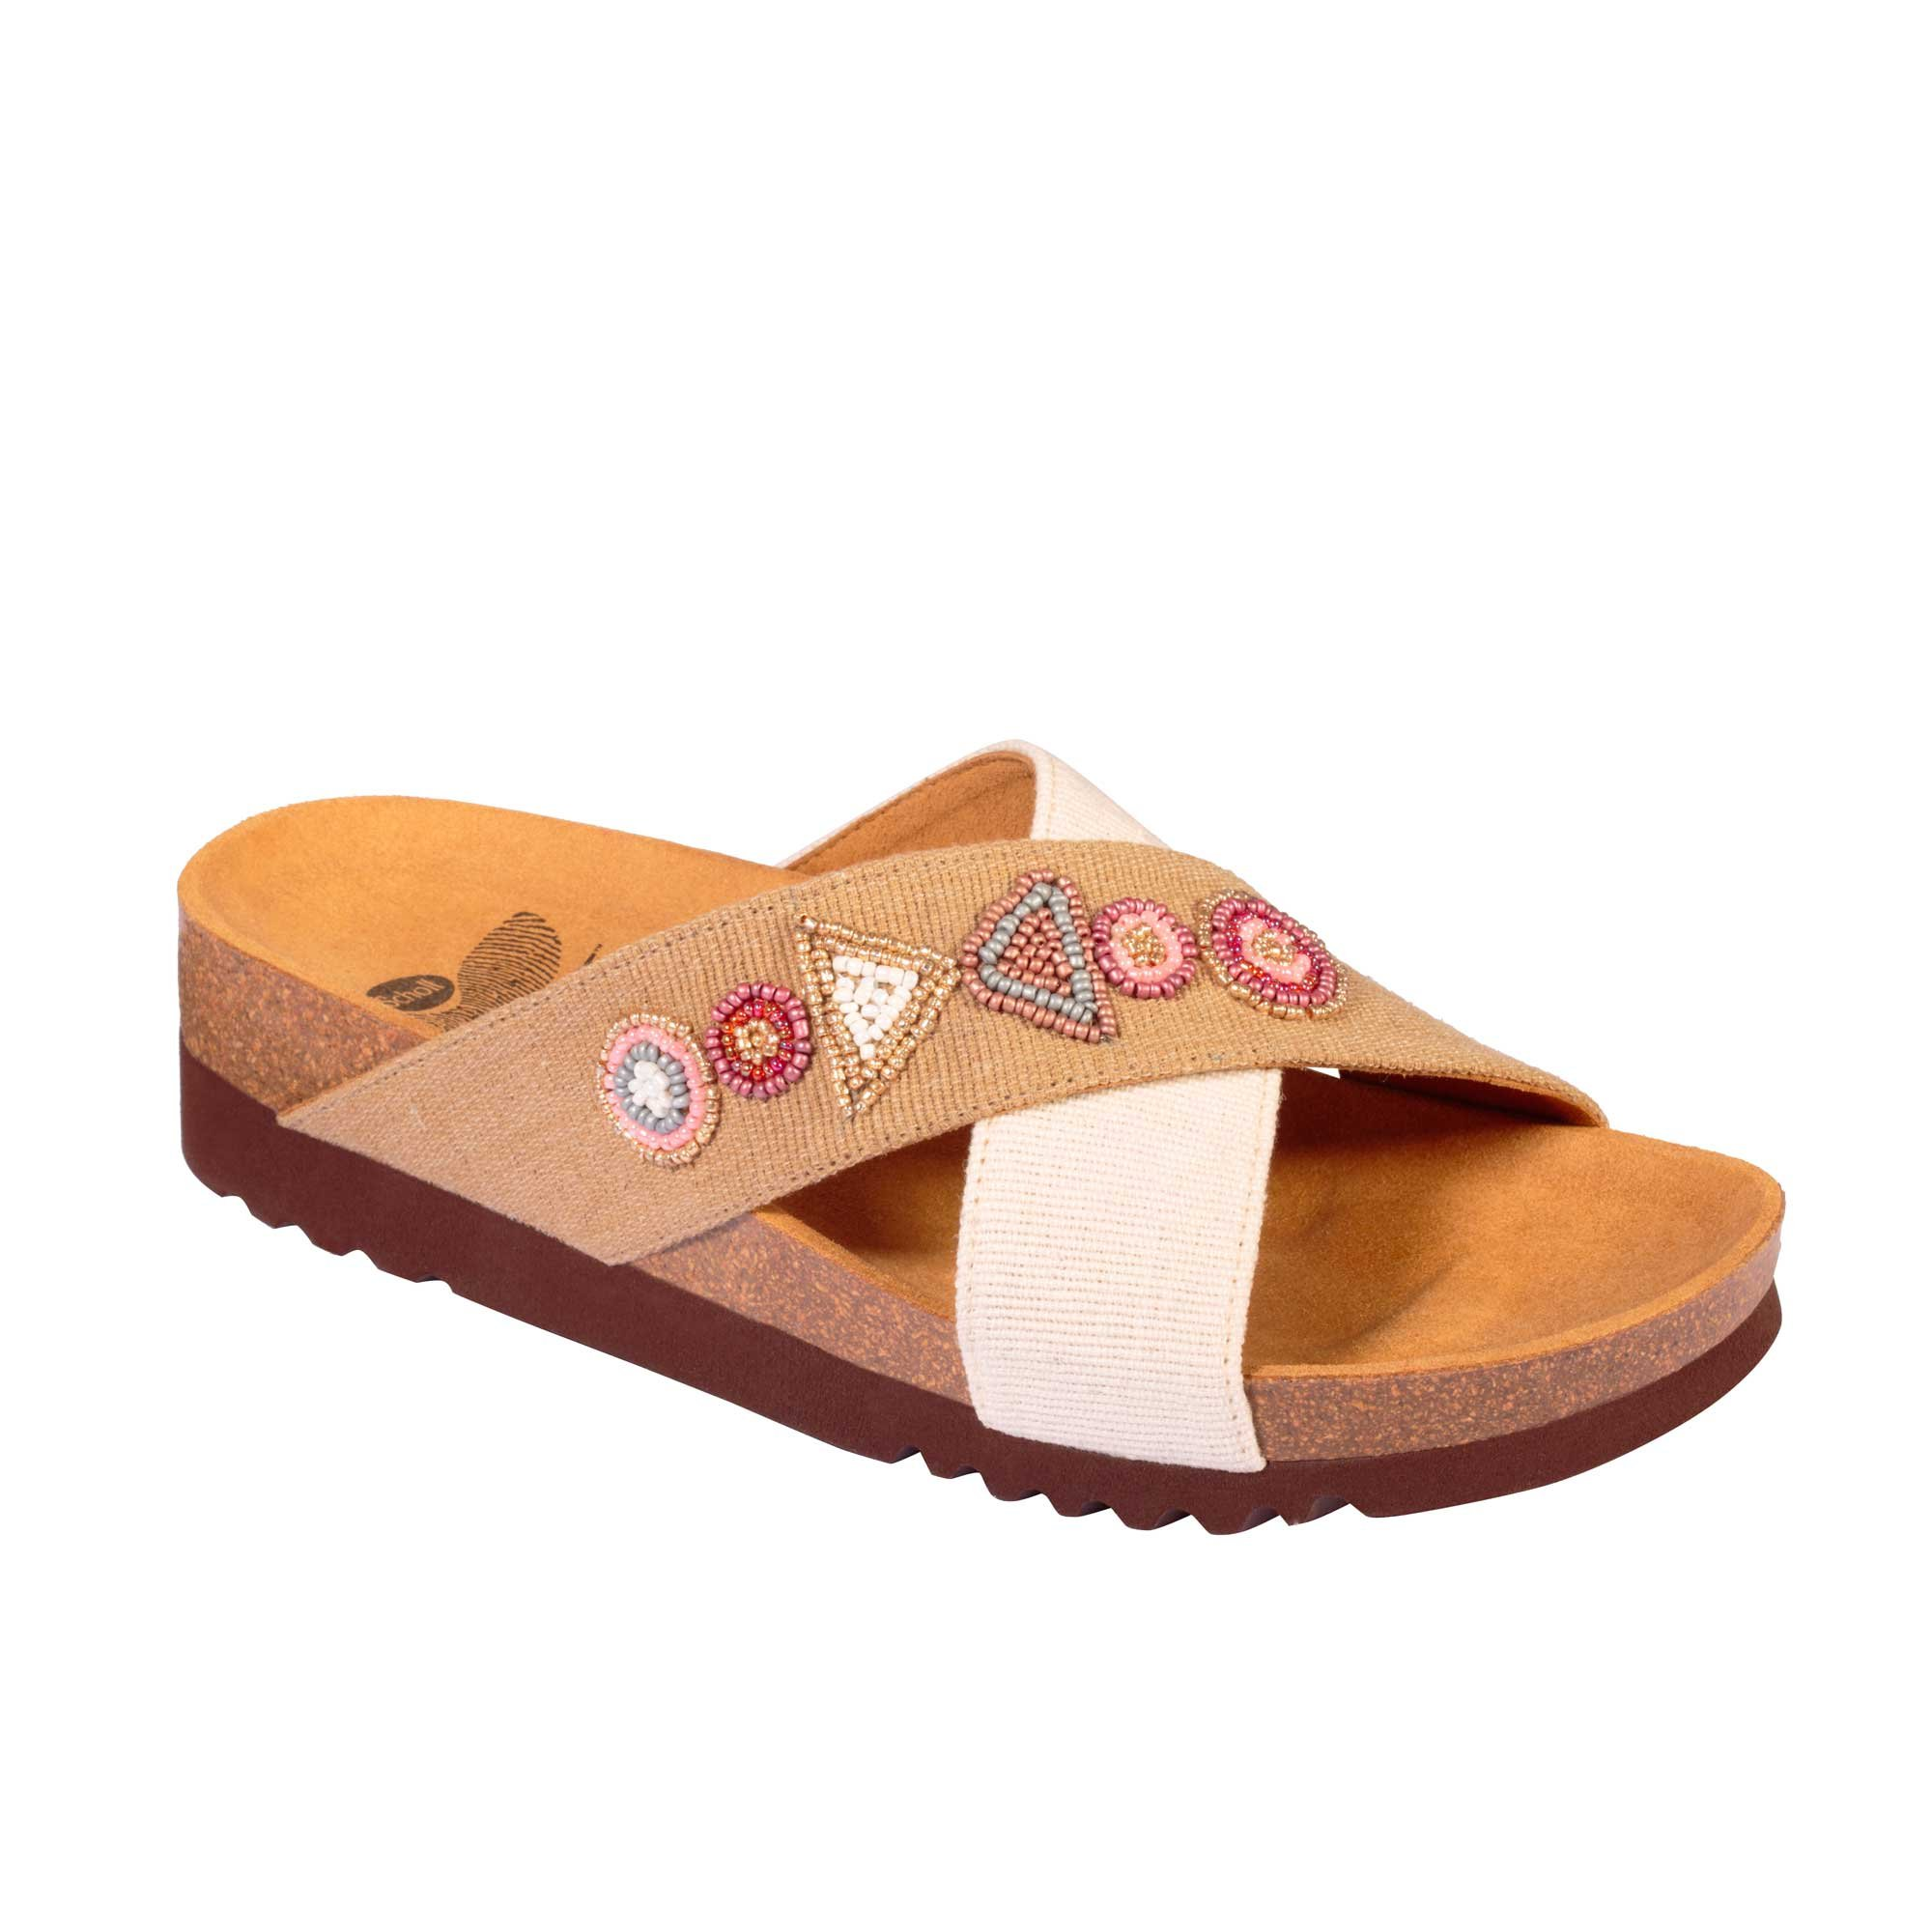 53e9a27f6247 SCHOLL CANVBEADS-W WOMEN S FLIP FLOPS WITH BEEDS WHITE